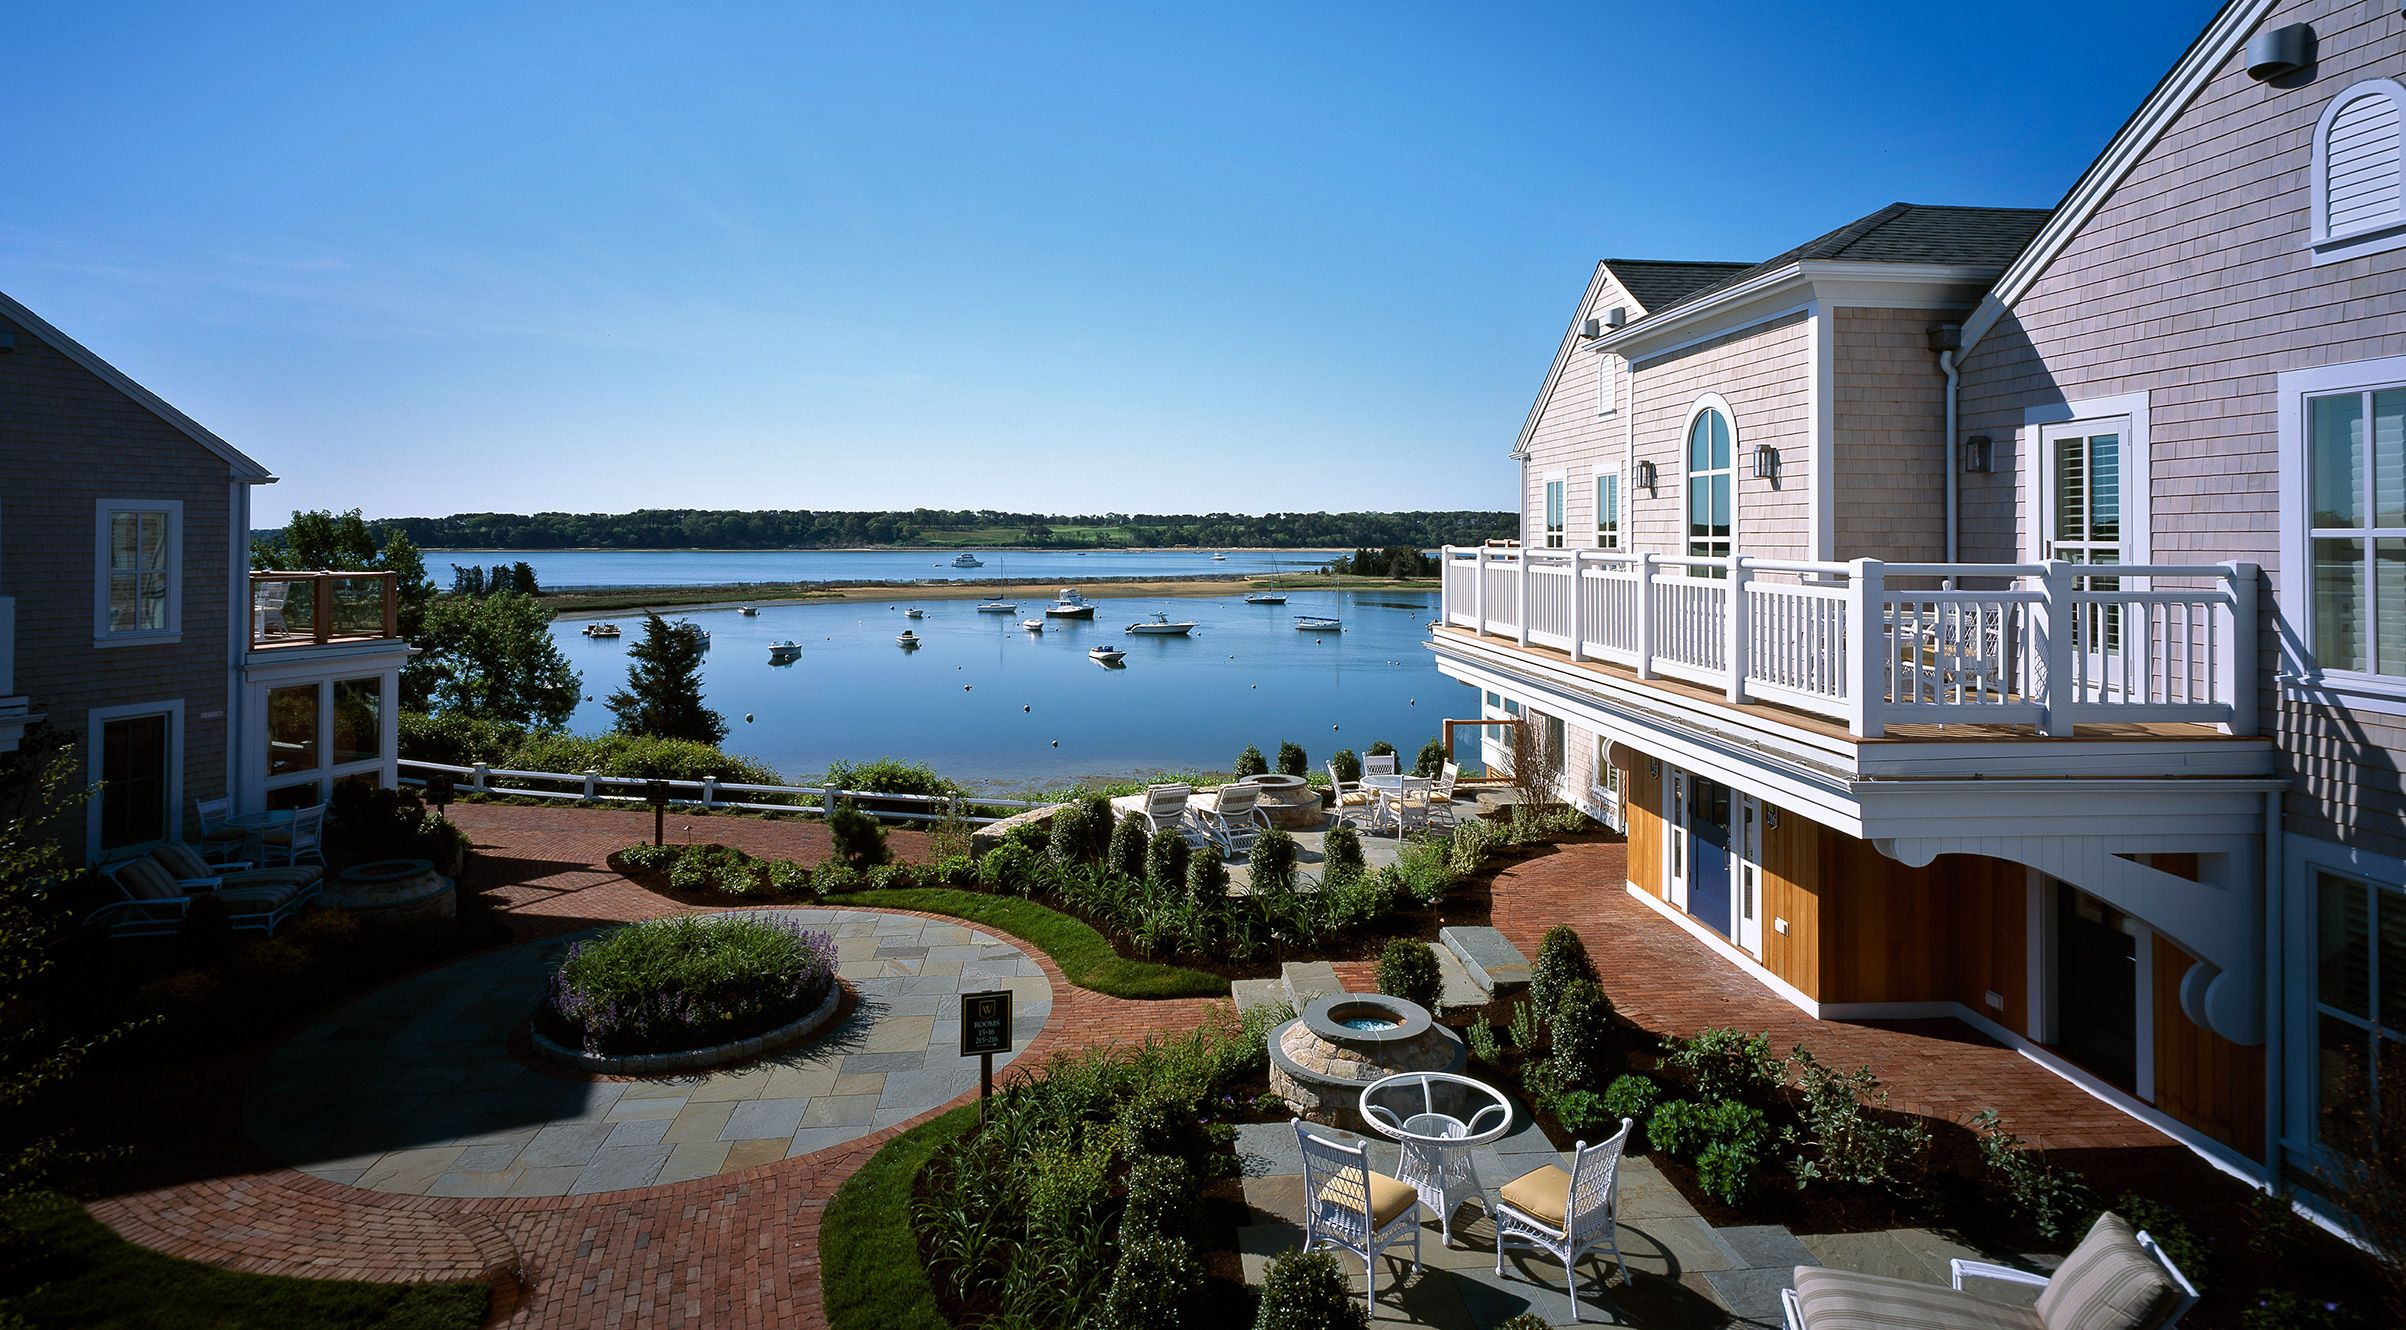 Our Distinction As The Finest Cape Cod Resort Endlessly Inspires Us To Create An Experience Beyond All Exp Cape Cod Resorts Cape Cod Beaches Hotels And Resorts